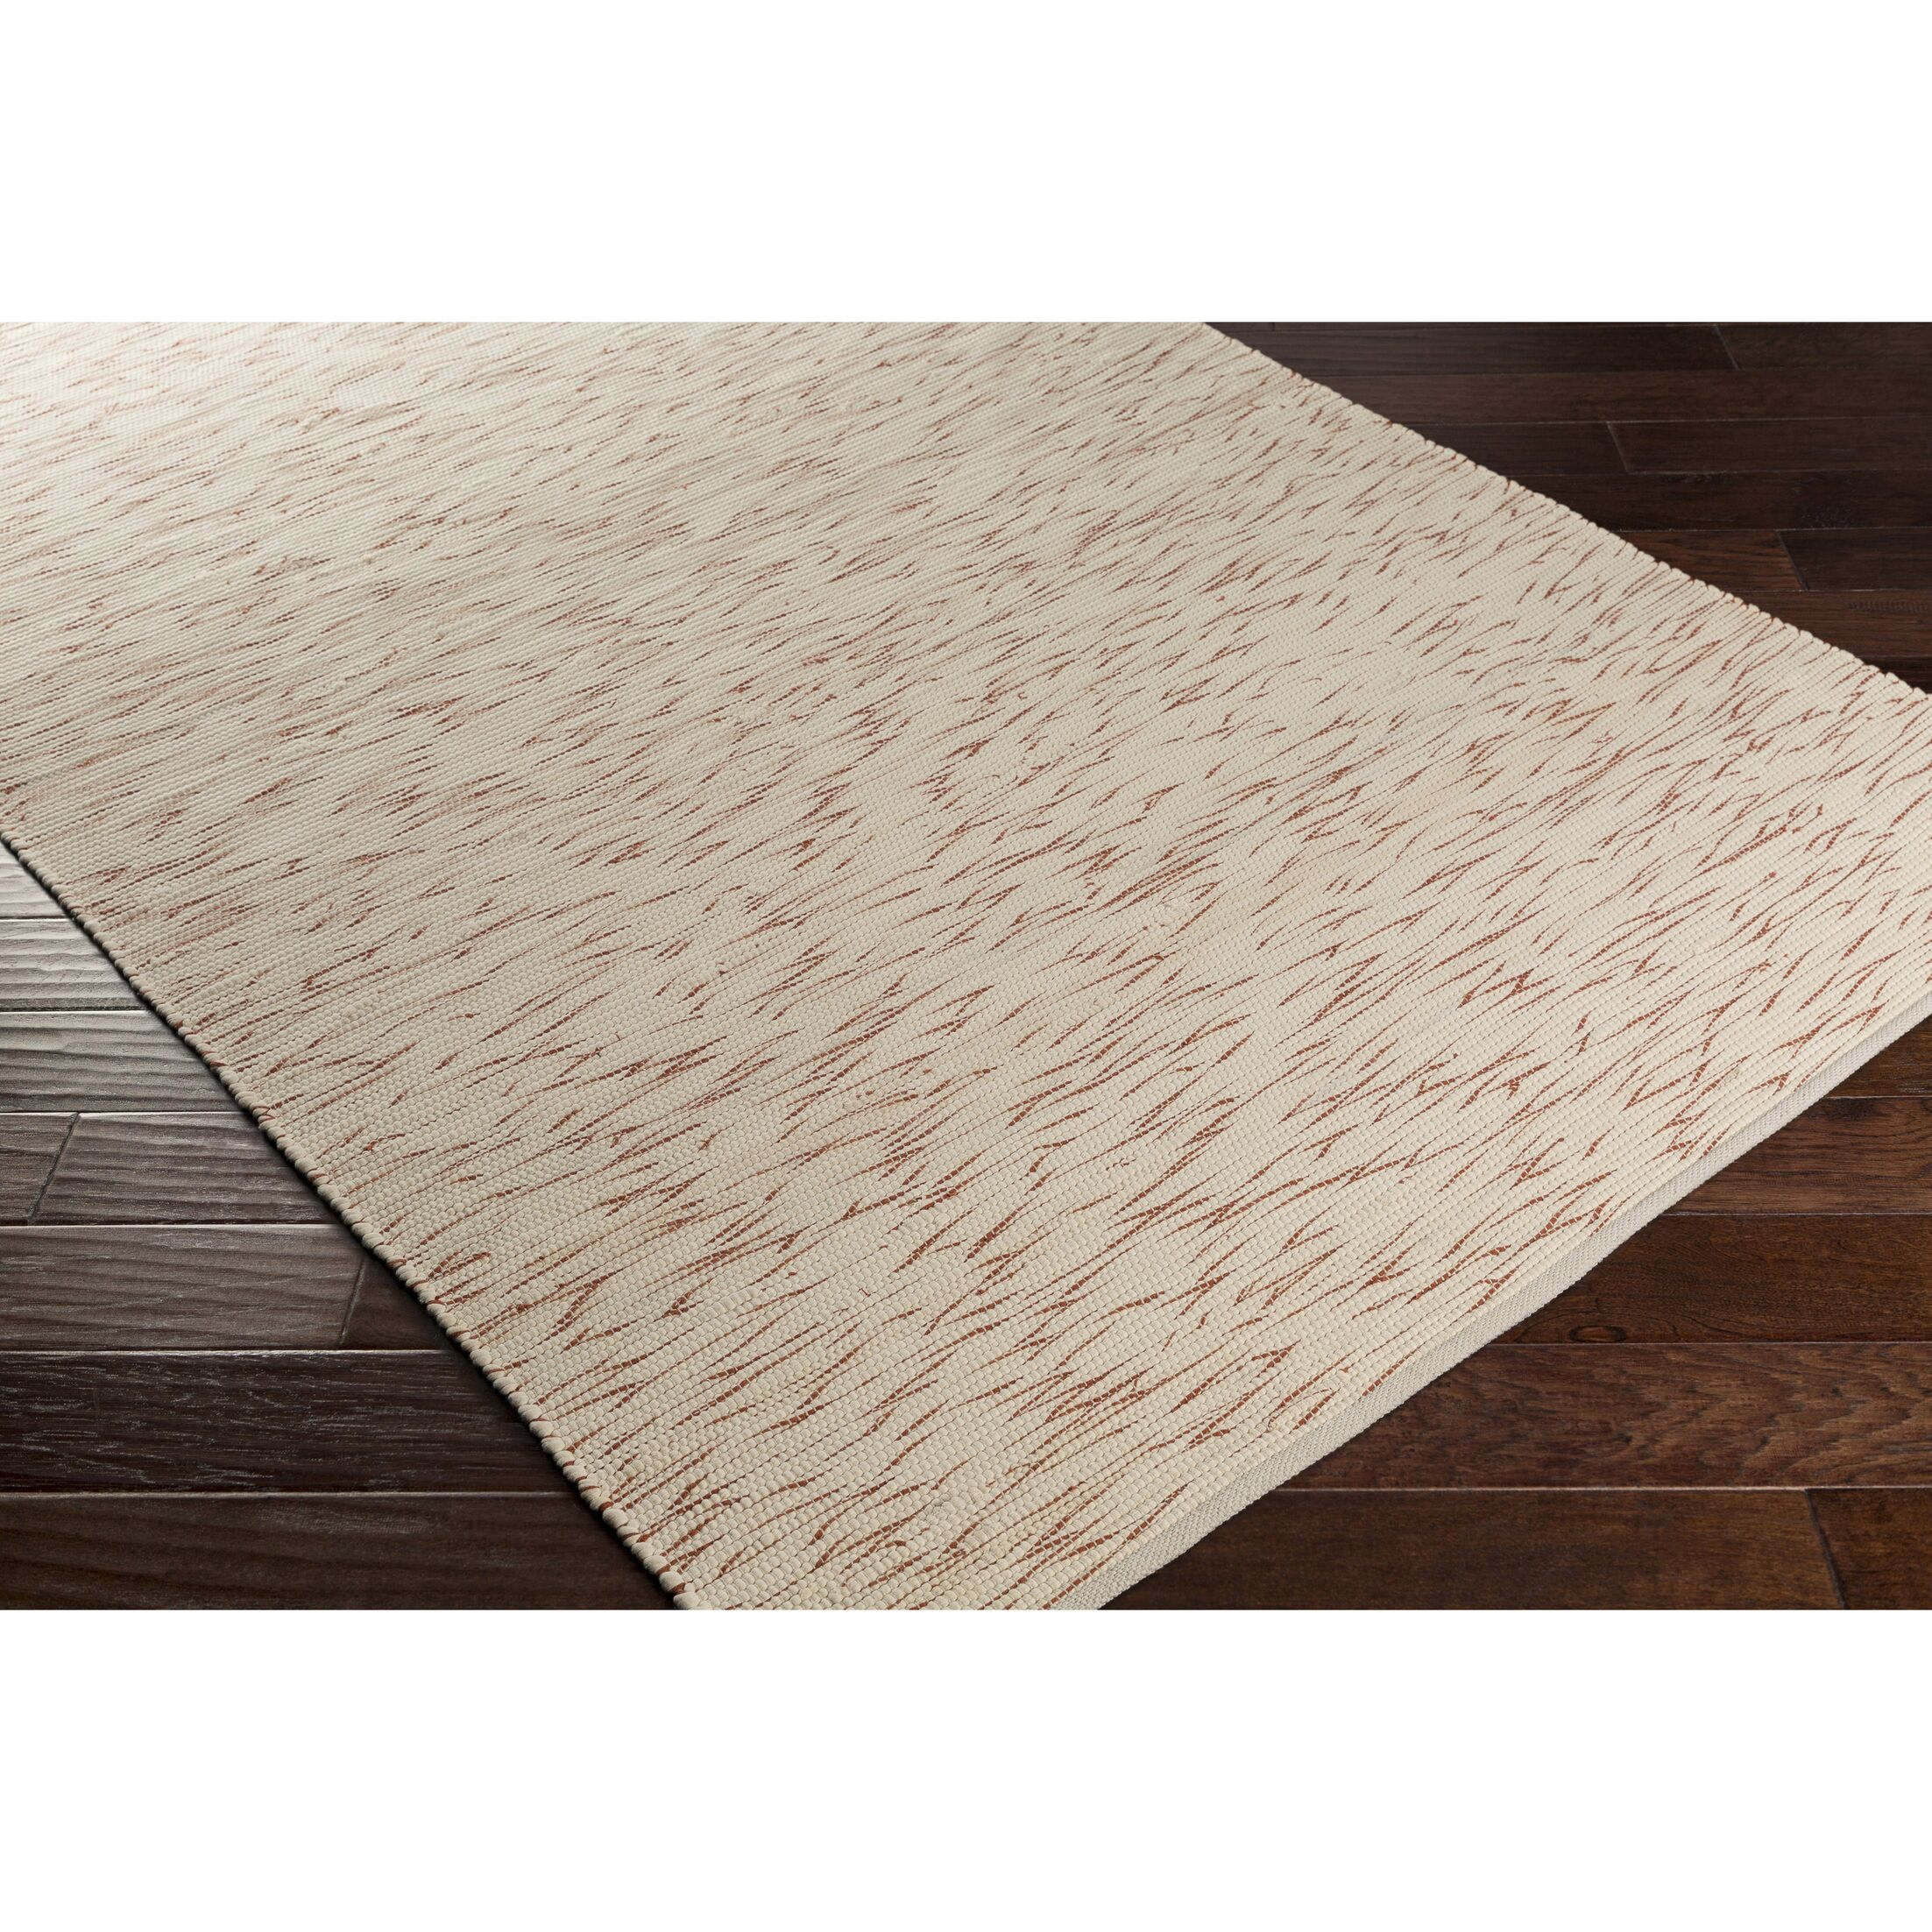 Forestport Hand-Woven Orange/Neutral Area Rug Rug Size: Rectangle 5' x 7'6